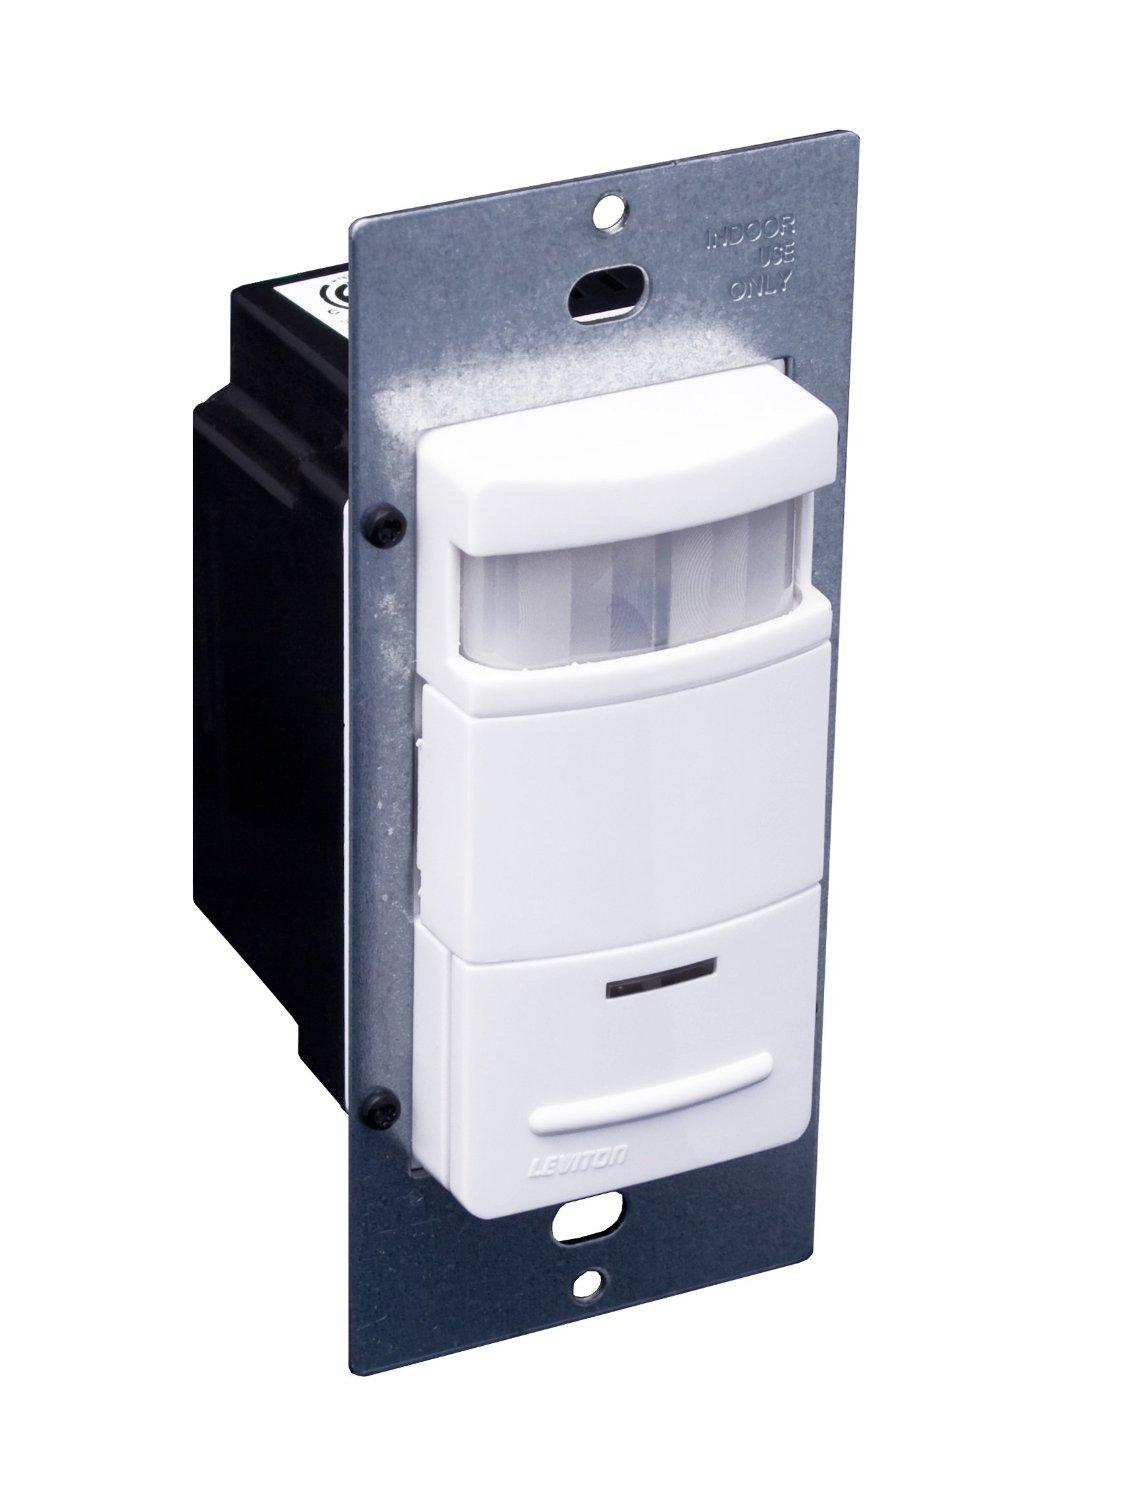 leviton ods10 idw decora passive infrared wall switch occupancy